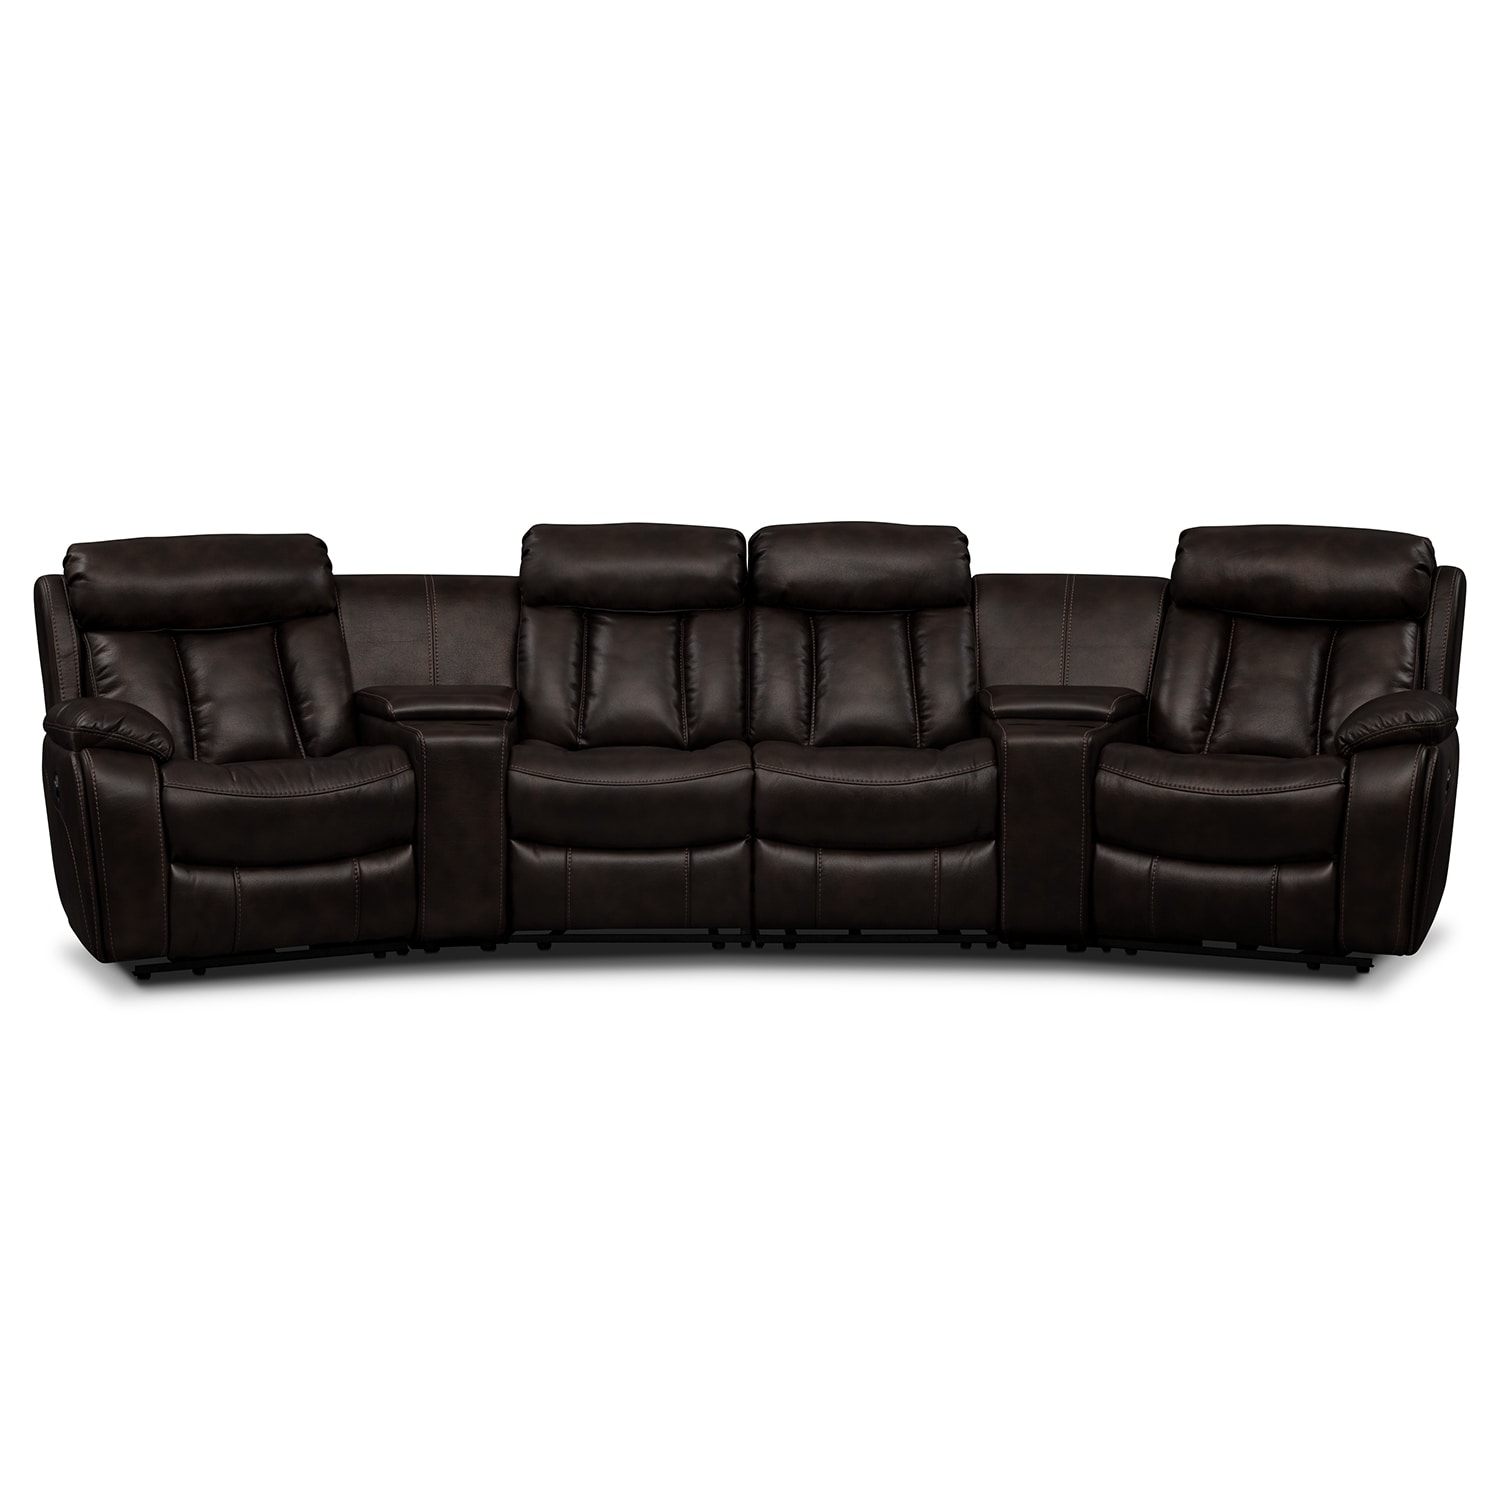 Living Room Furniture - Remington 6 Pc. Power Reclining Sectional (Alternate)